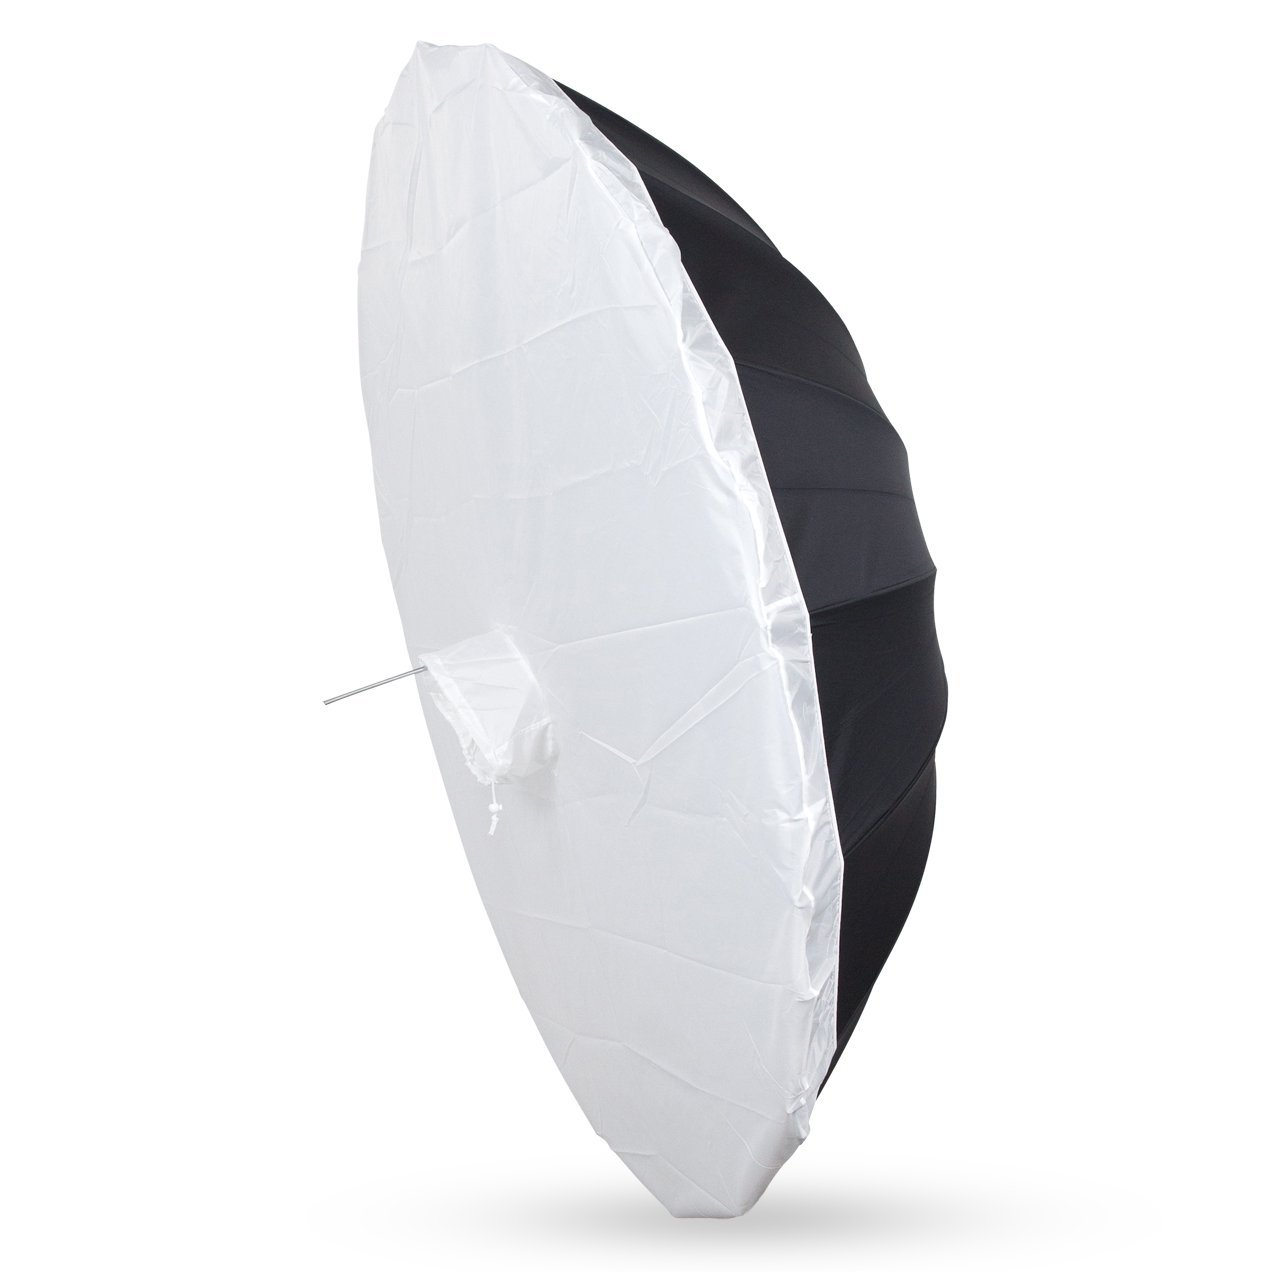 UNPLUGGED STUDIO Diffuser for 70inch Umbrella UN-014 by UNPLUGGED STUDIO